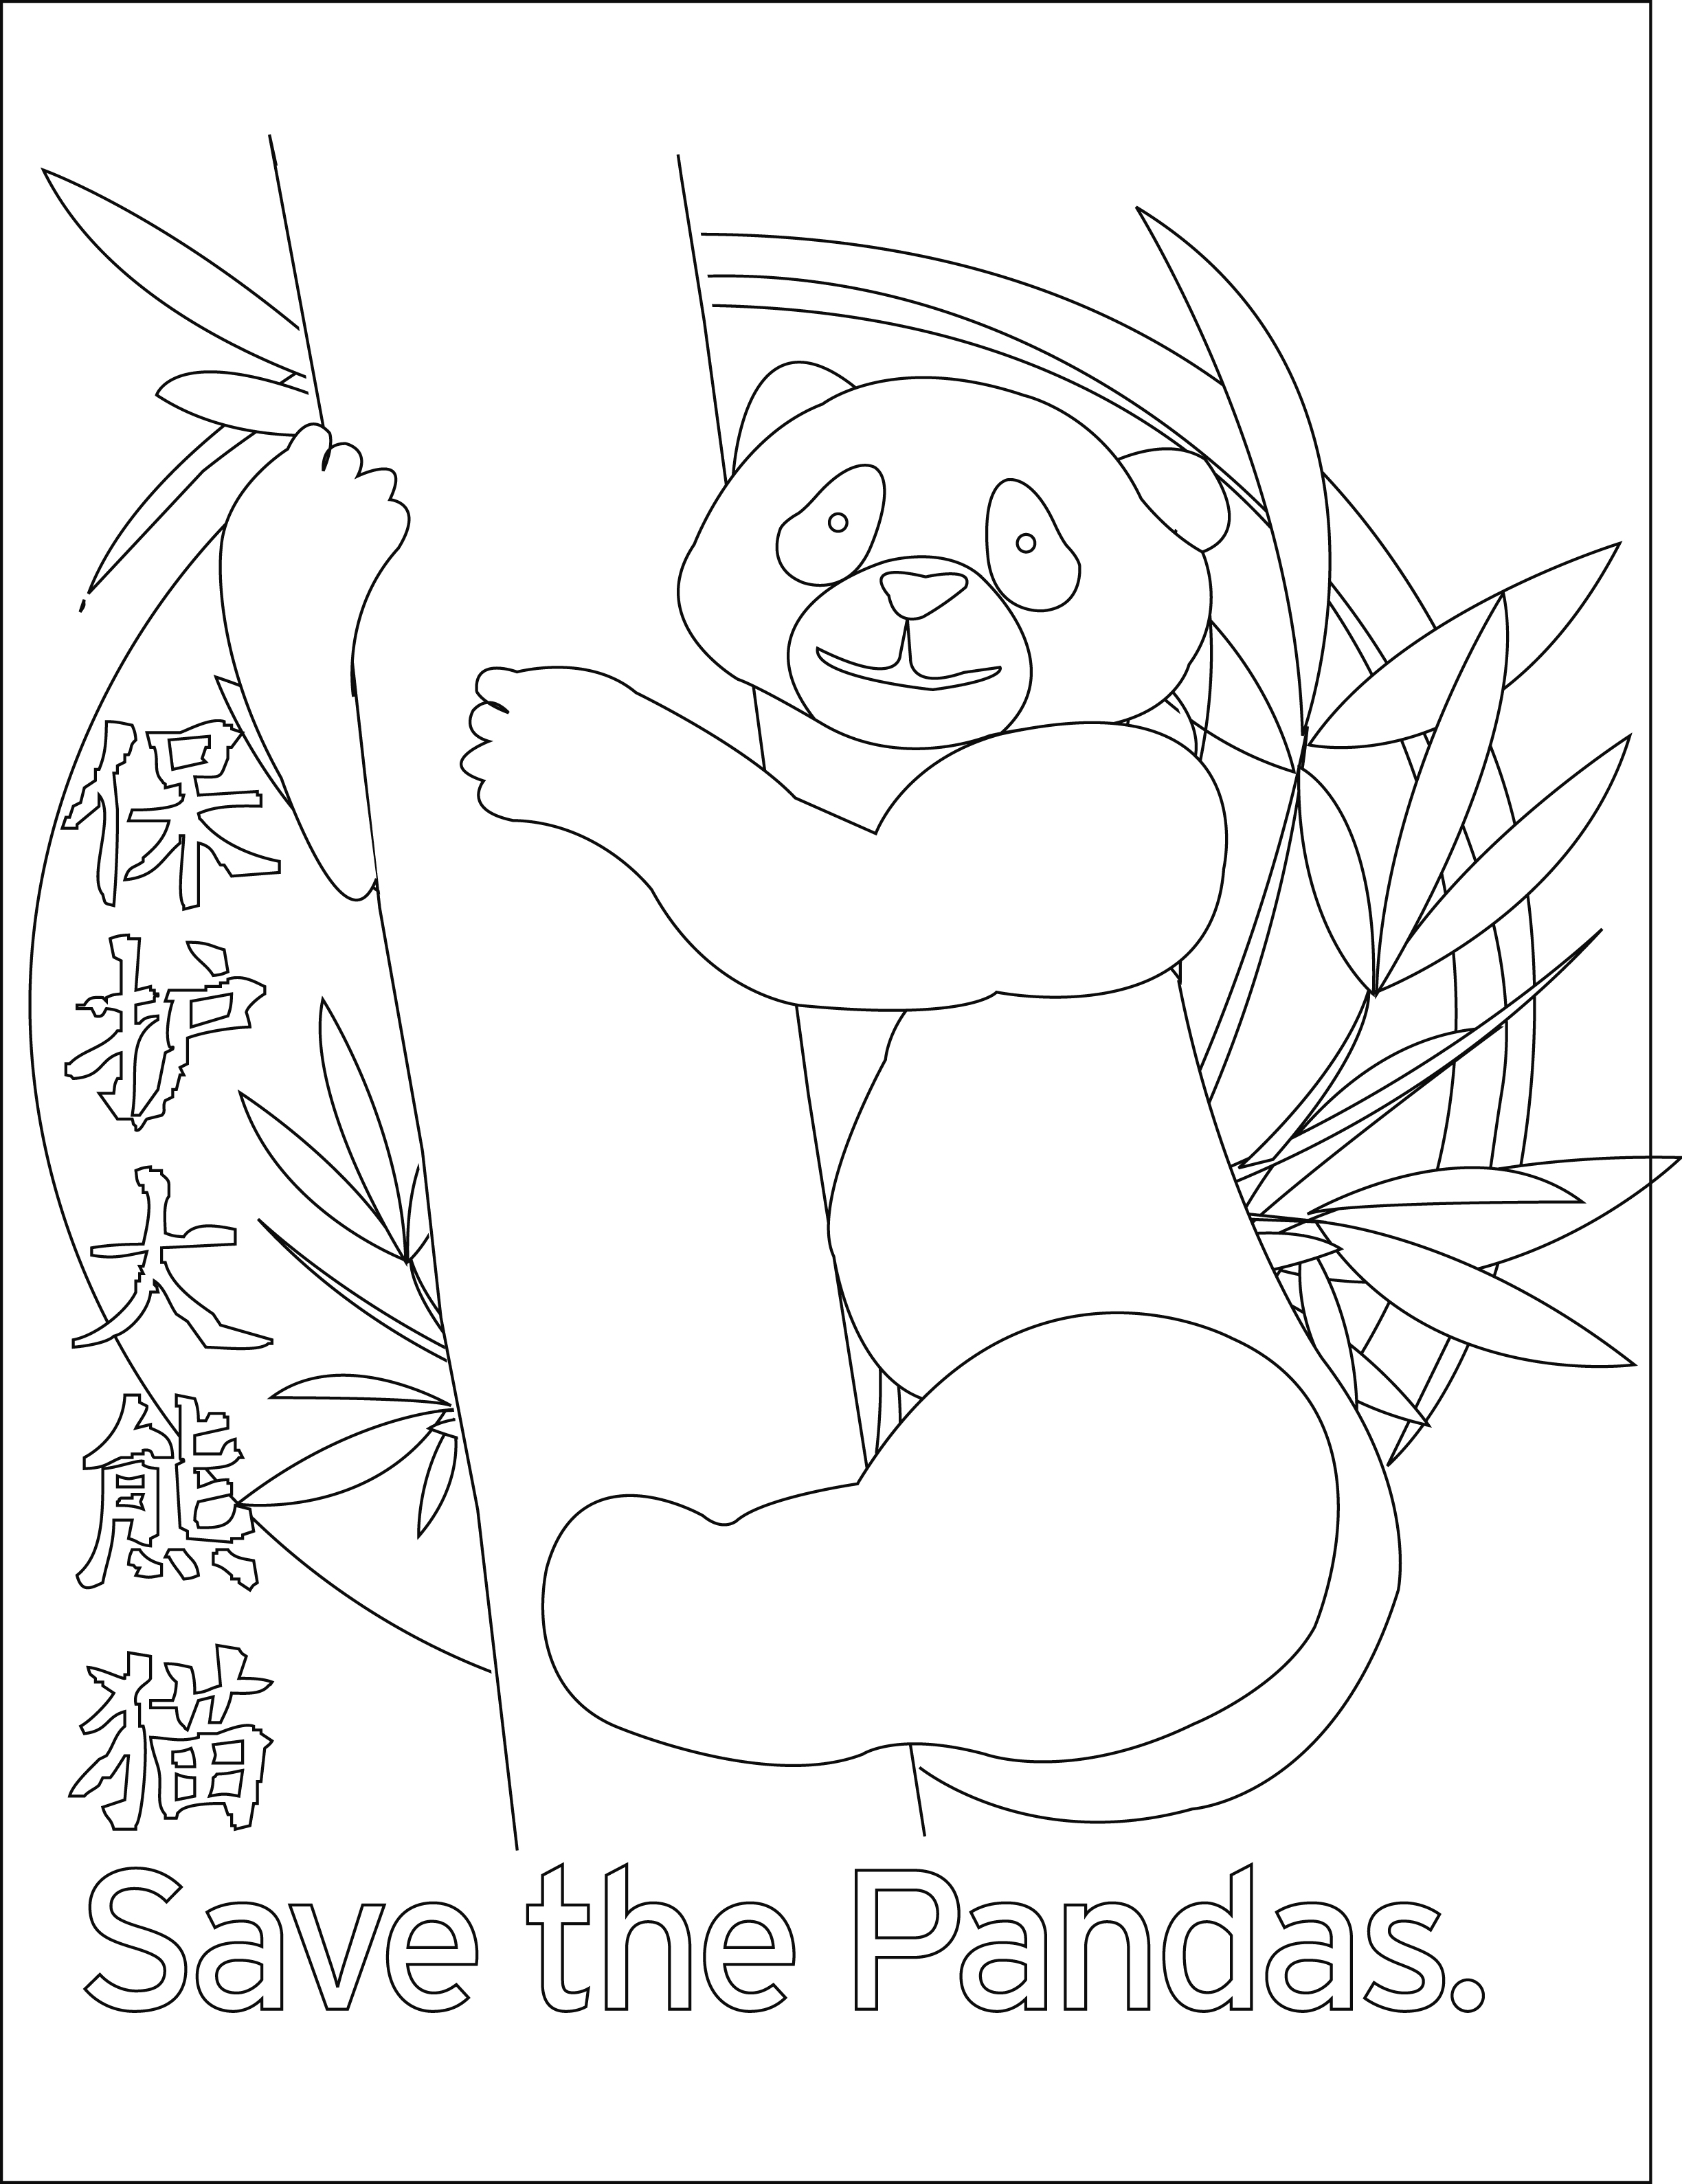 pond ecosystem coloring pages | Aquatic Ecosystems: Aquatic Ecosystems Activities